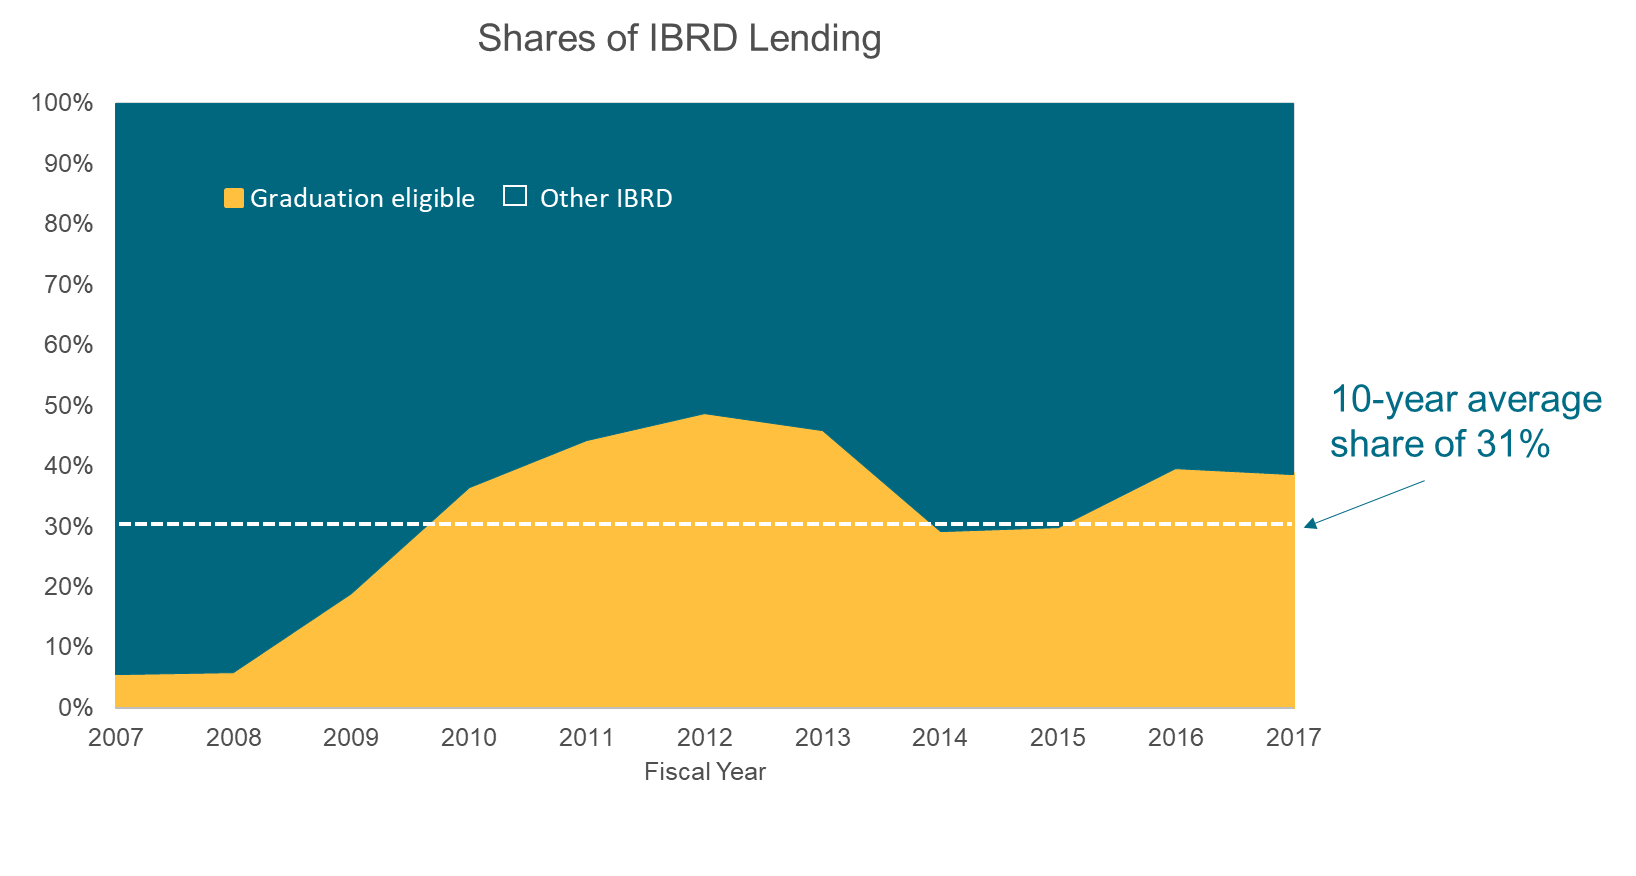 graph of the share of IBRD lending: graduation eligible vs. other IBRD